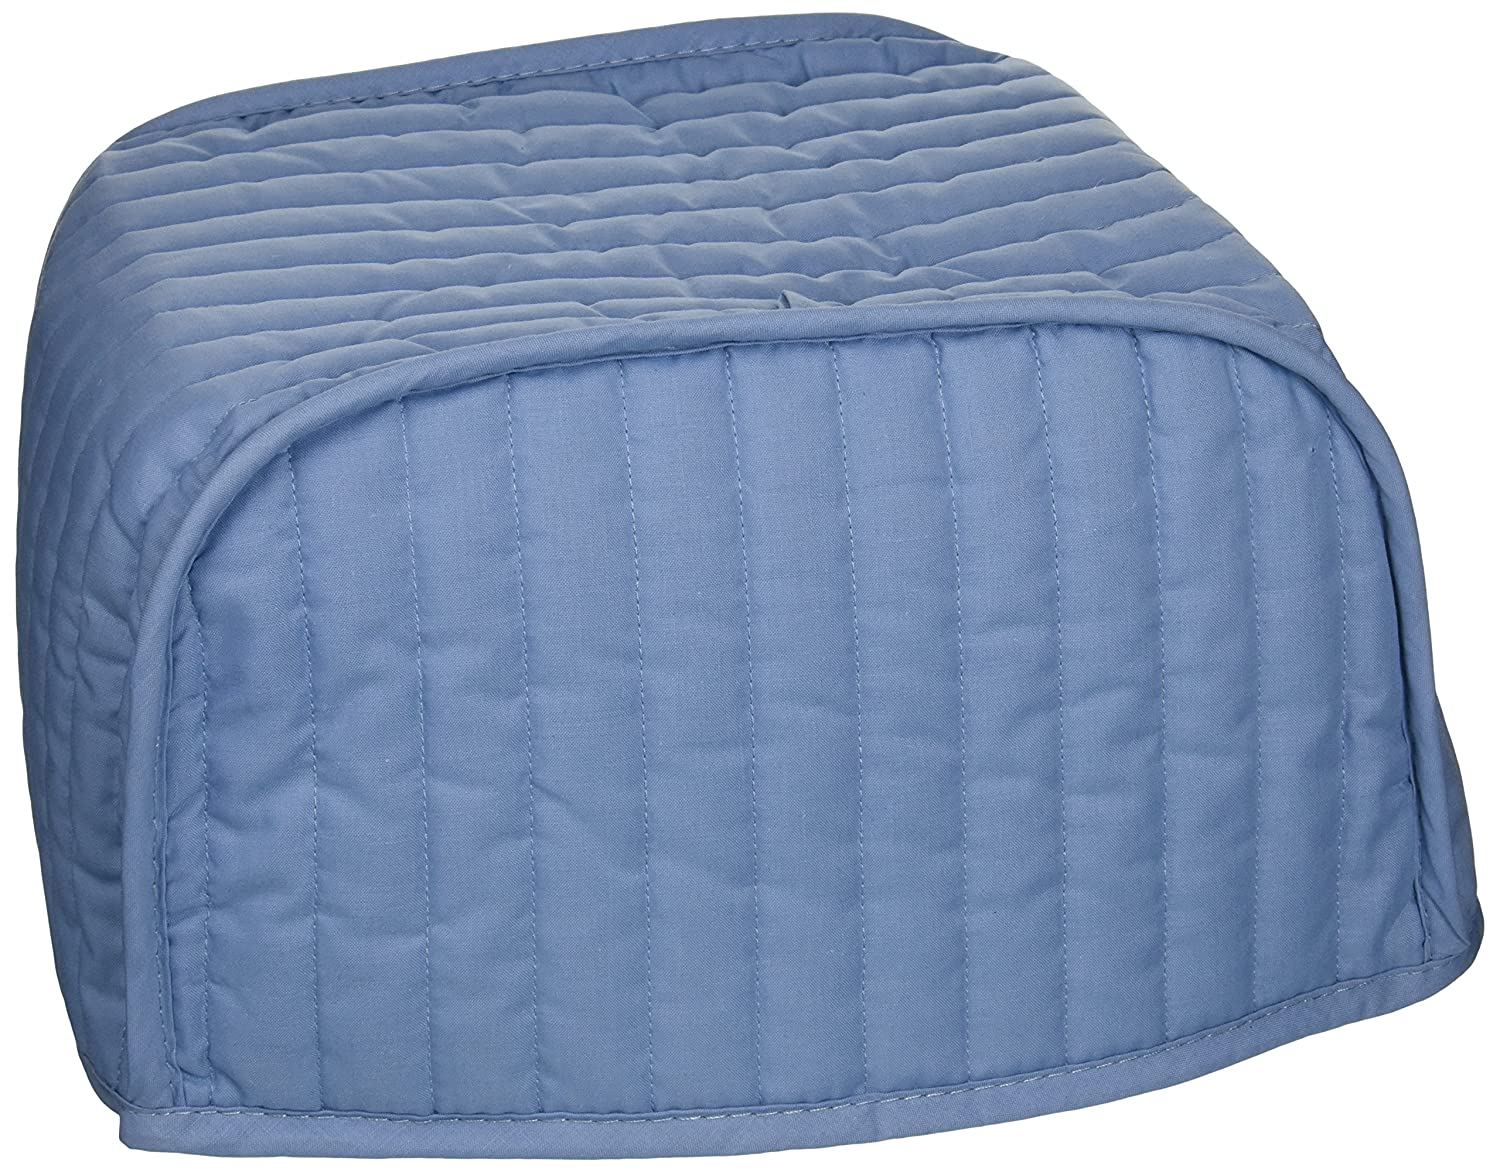 Quilted Kitchen Appliance Covers Amazoncom Ritz Quilted Two Slice Toaster Appliance Cover Light